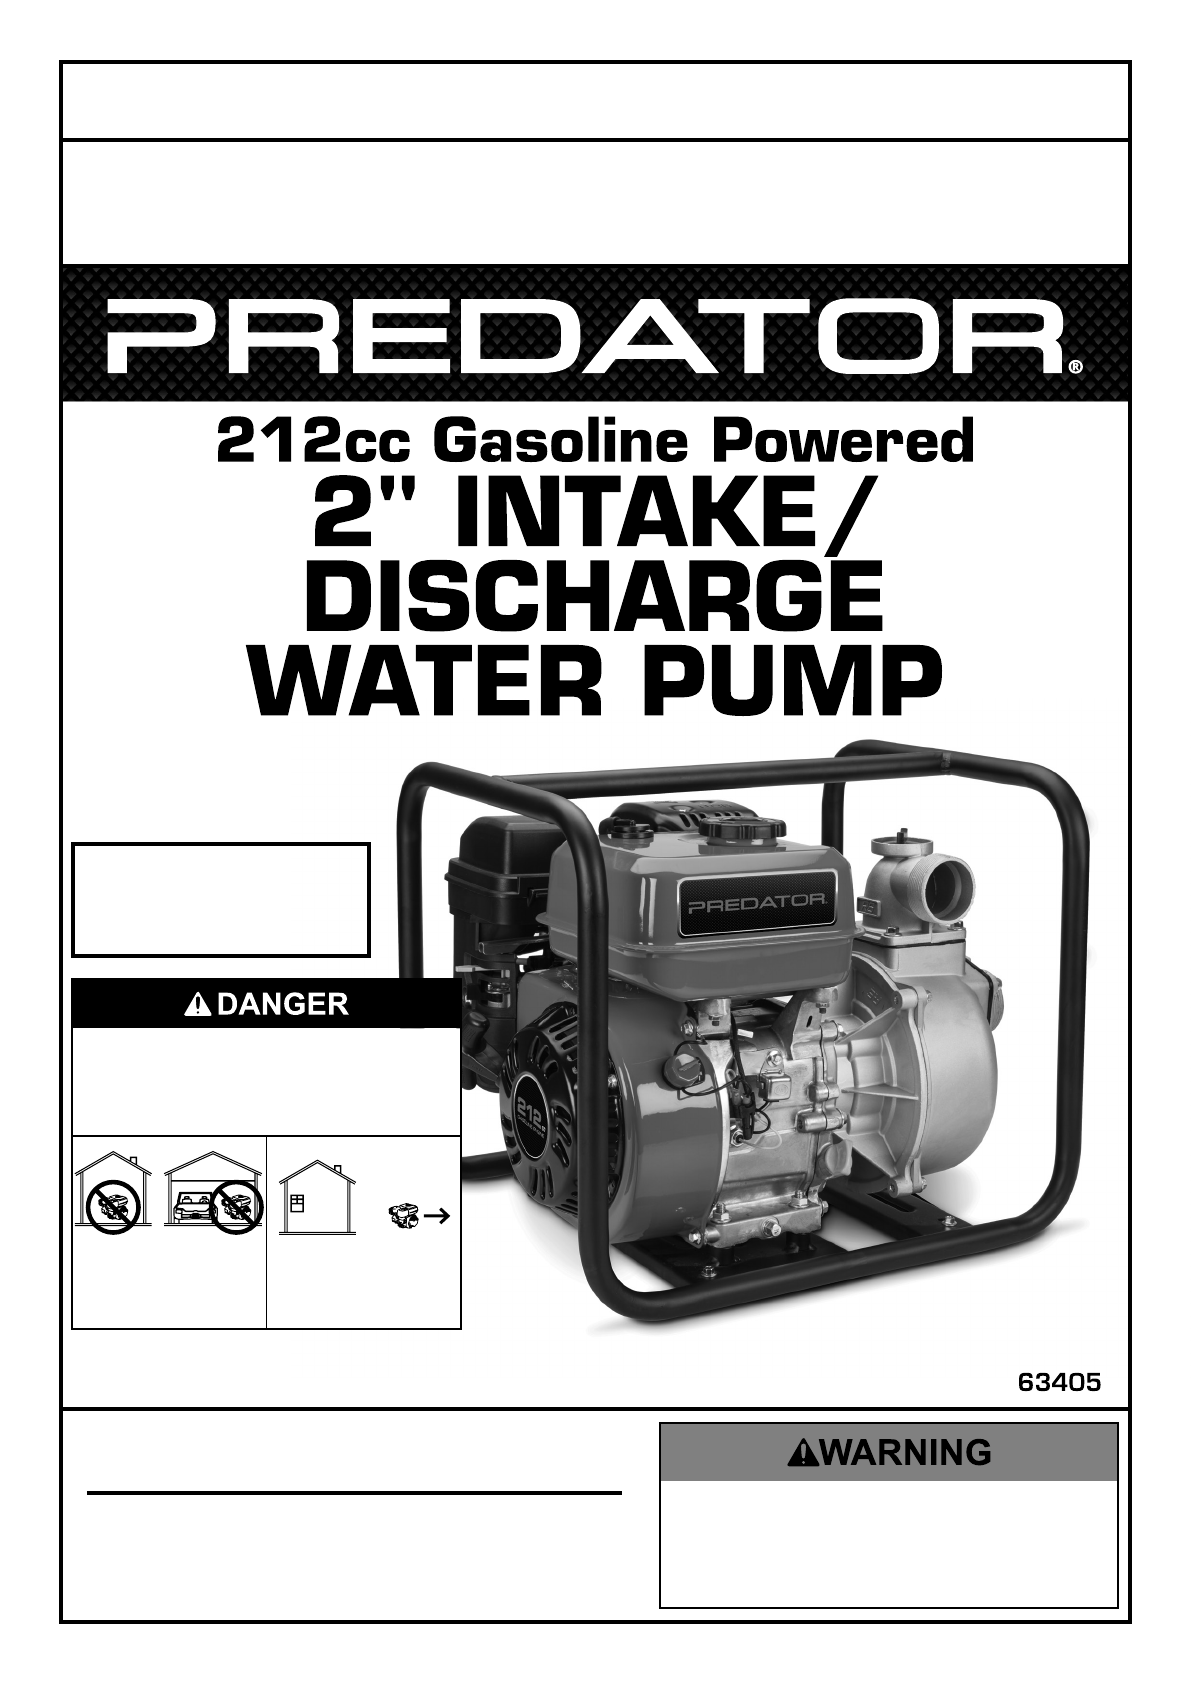 hight resolution of manual for the 63405 2 in intake discharge 212cc gasoline engine water pump 158 gpm